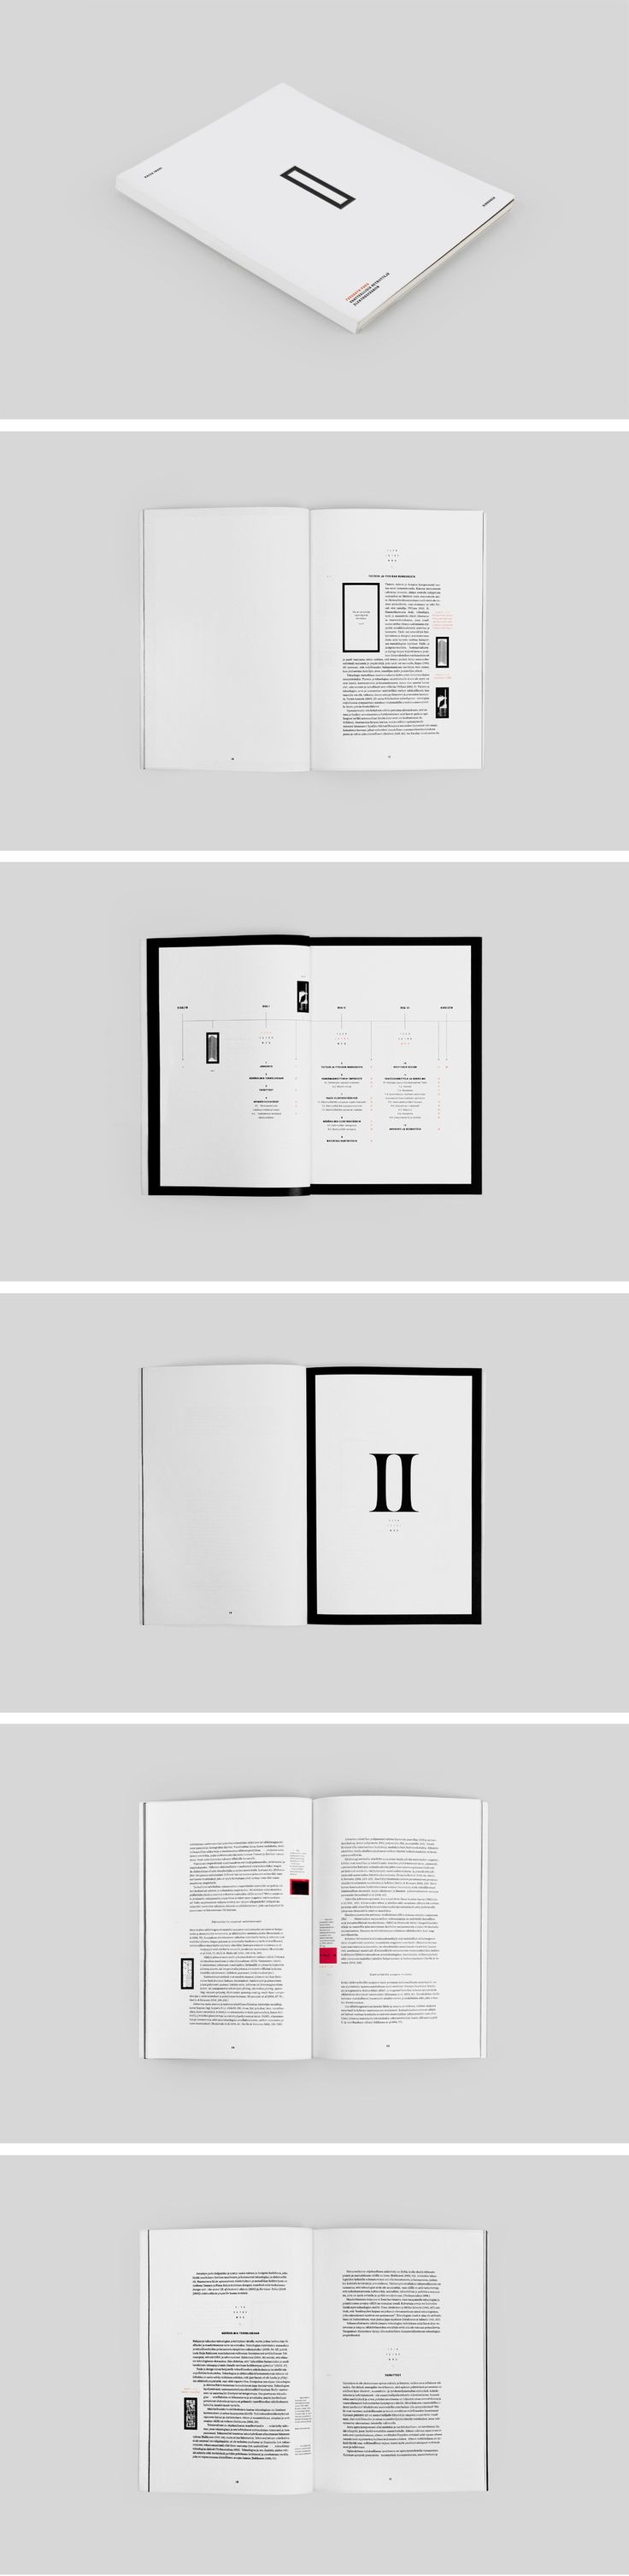 I like the bold Roman numerals, it can look dramatic with our black and white images & heirbooks